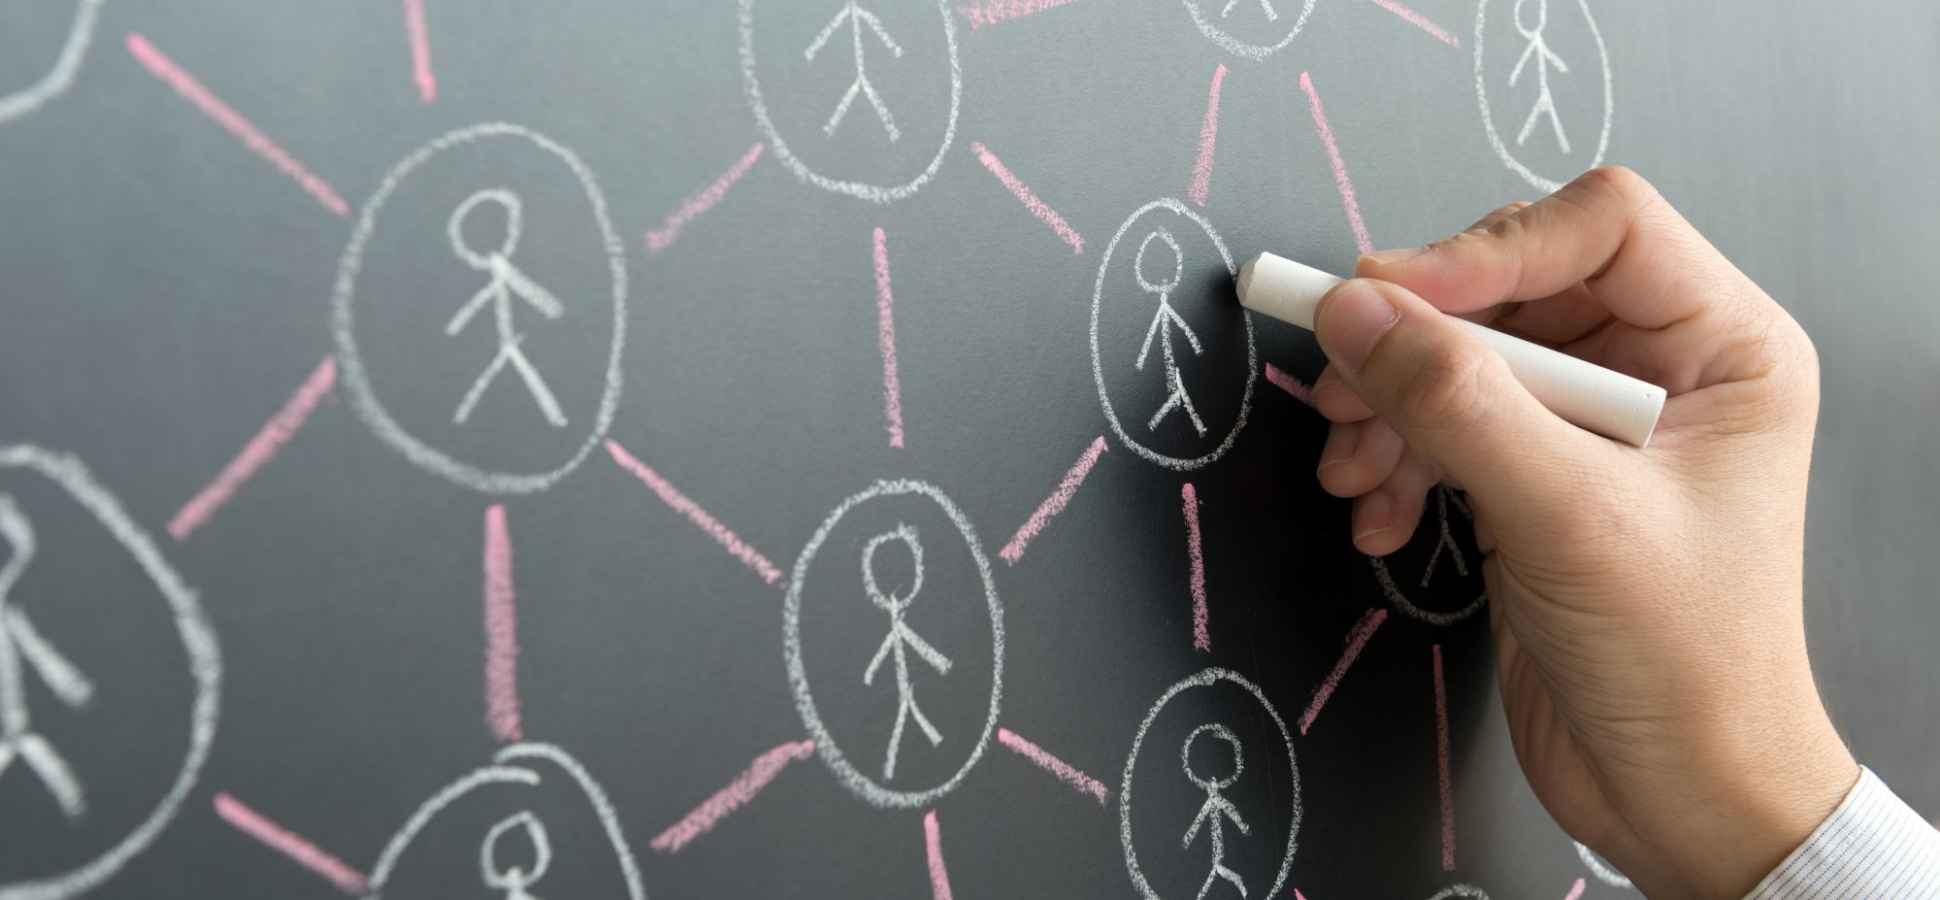 Two Simple Ways To Make Better Use Of Your LinkedIn Contacts